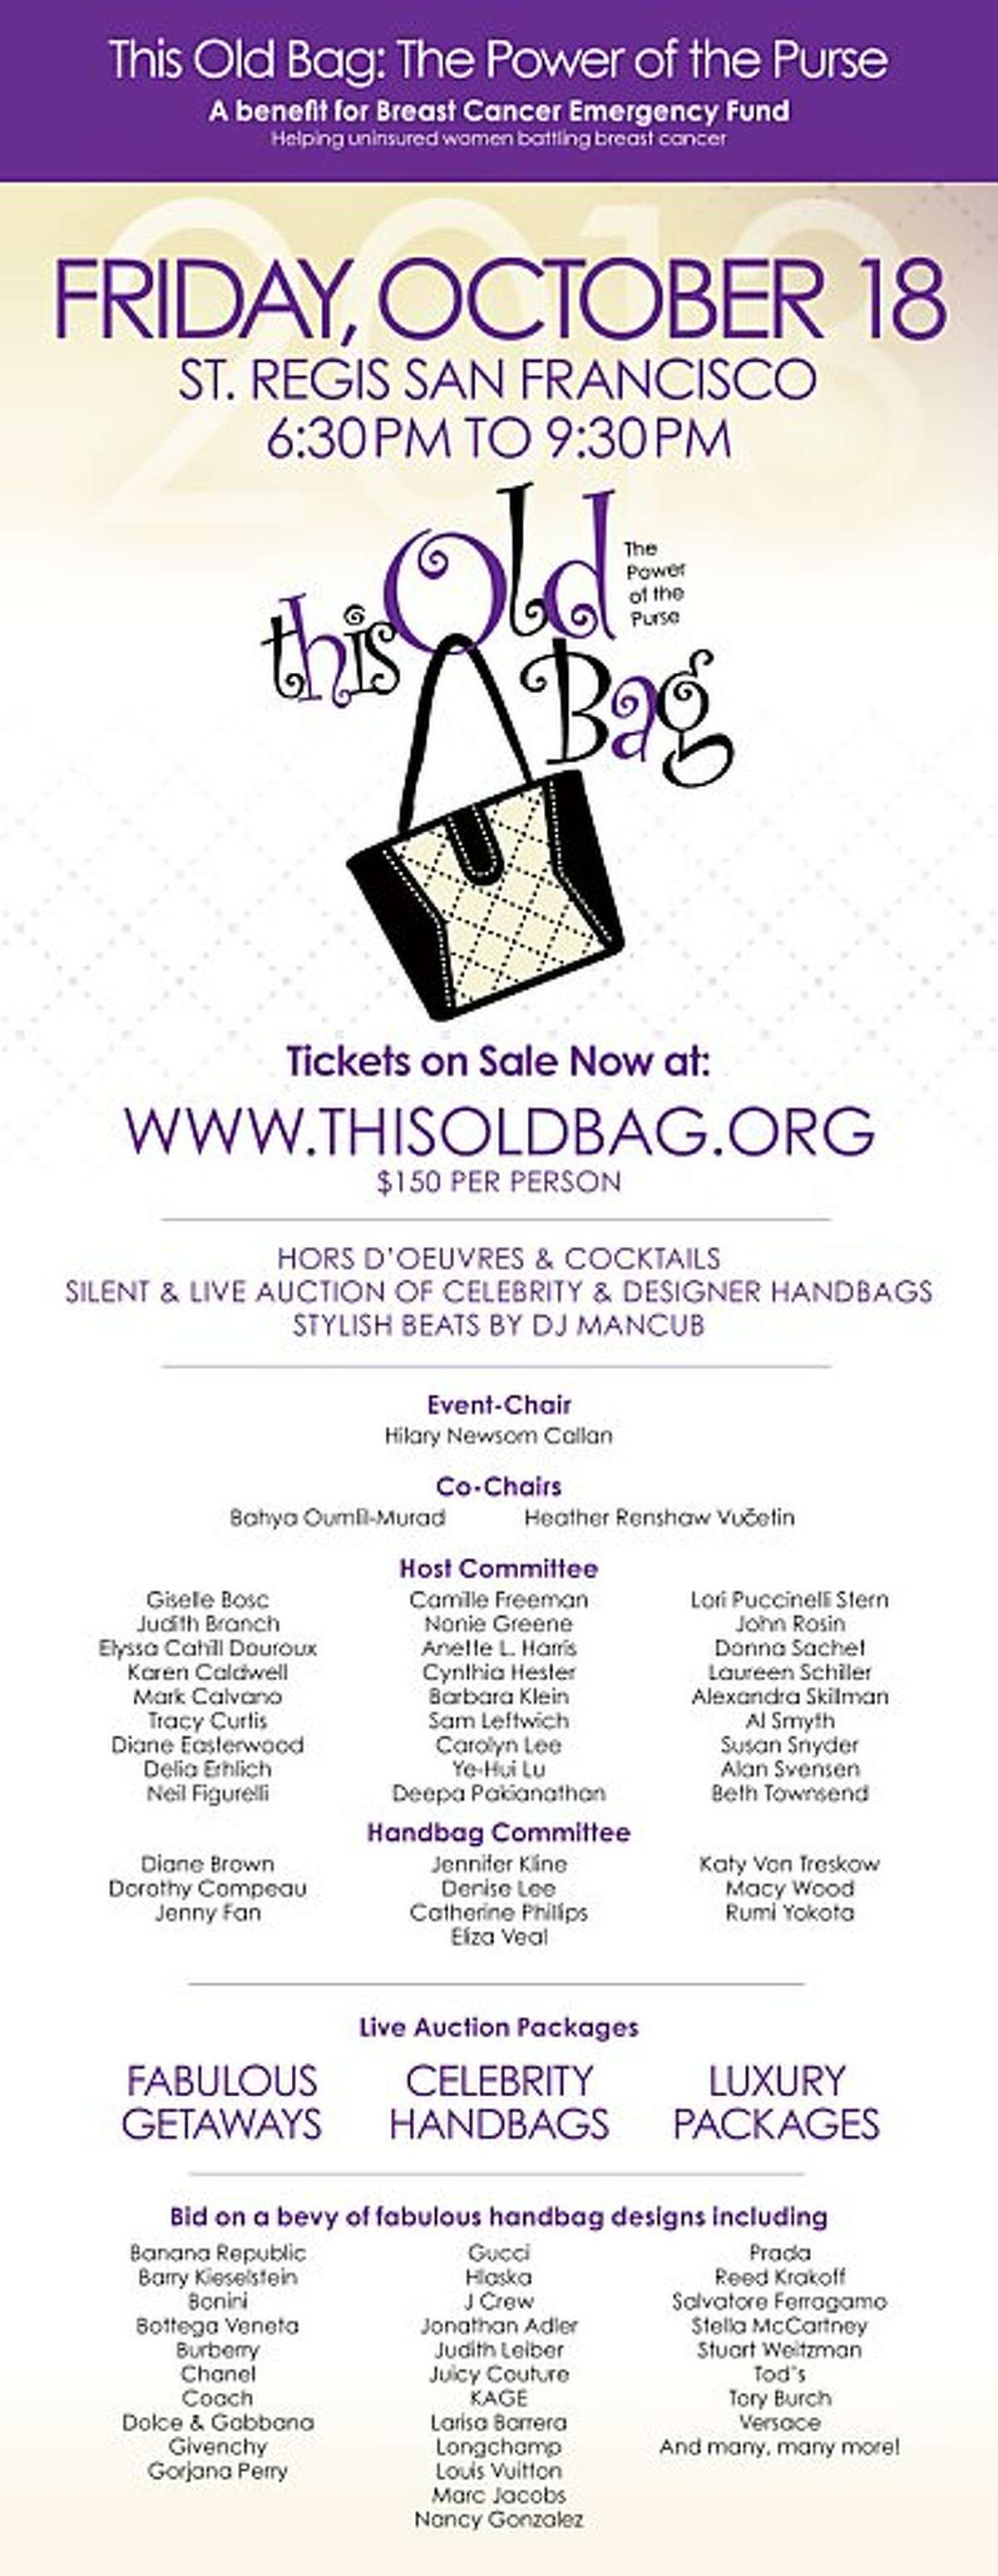 This Old Bag takes place Oct. 18 at the St. Regis Hotel.